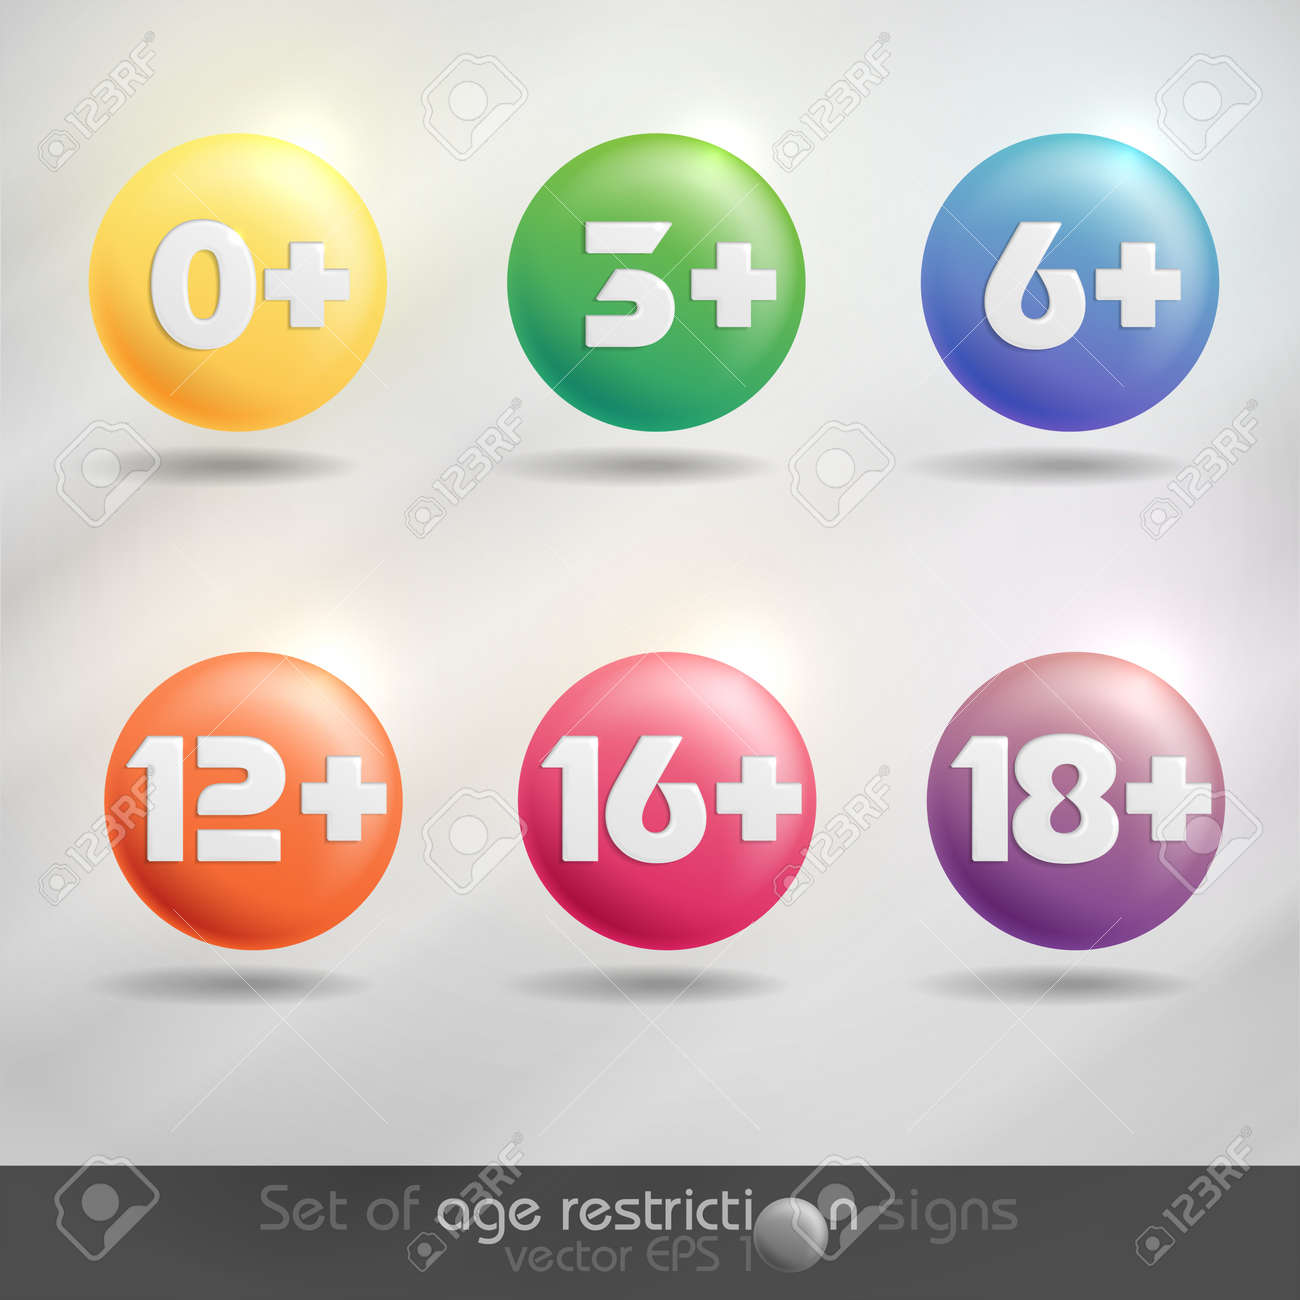 Set of age restriction signs   Vector illustration Stock Vector - 20992398